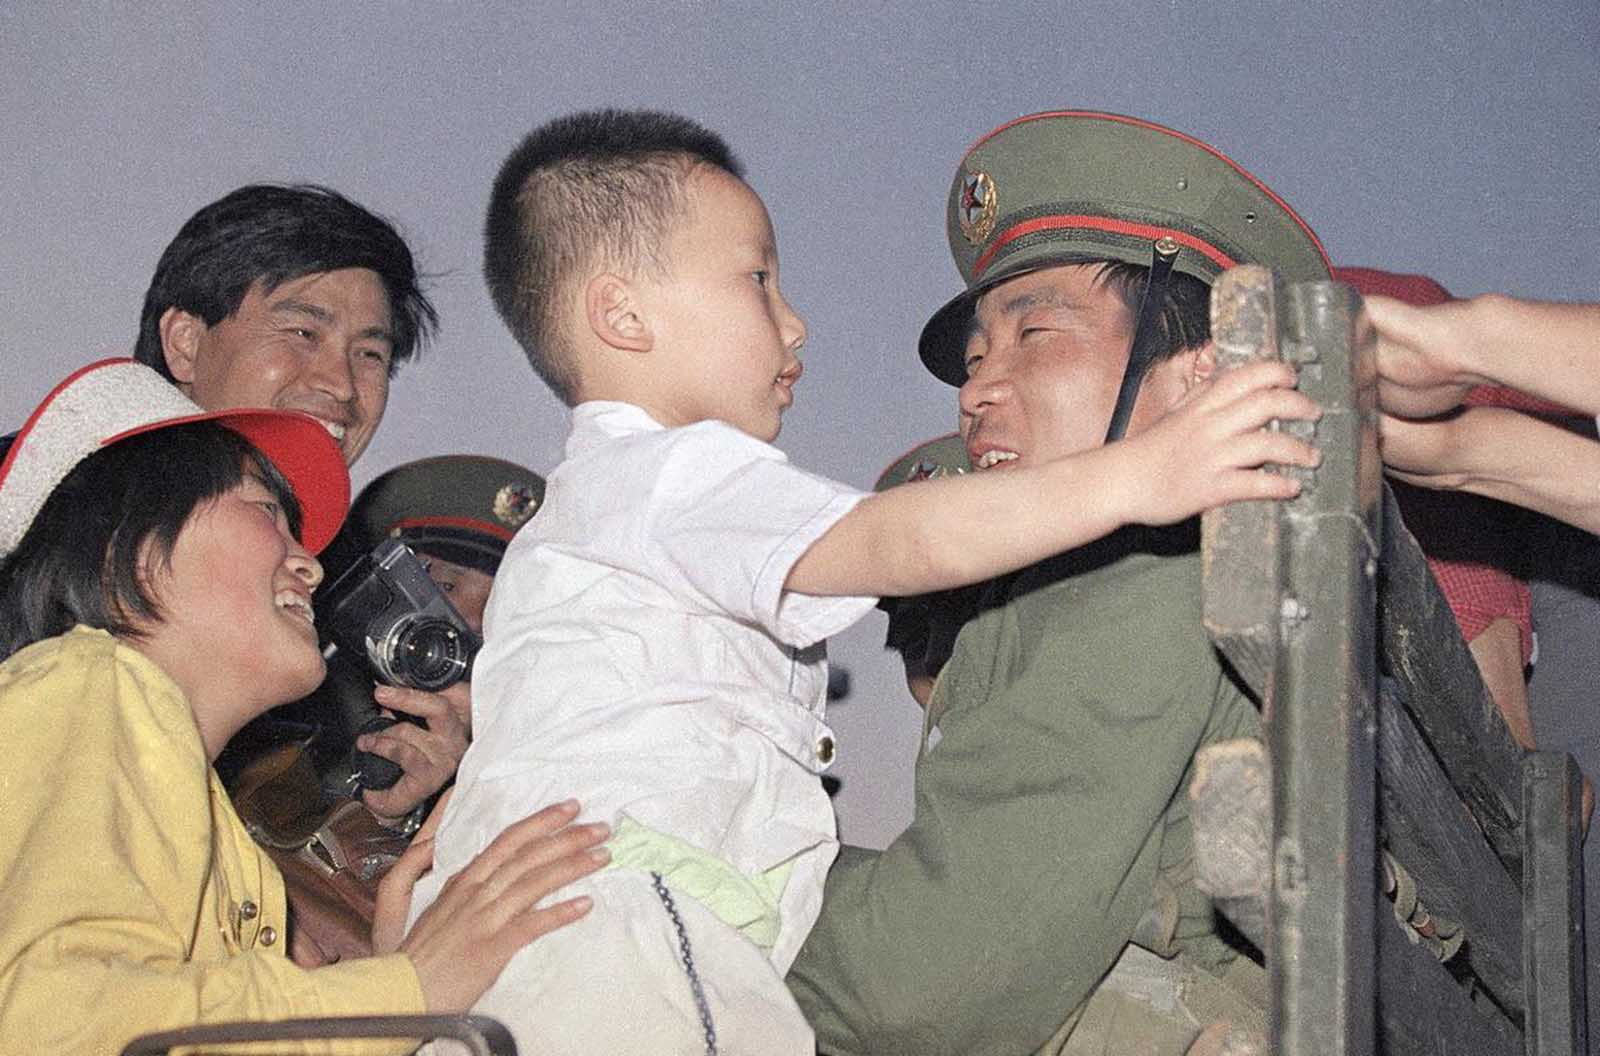 An unidentified mother introduces her son to a soldier on an army truck, 8 kilometers west of Tiananmen Square, in Beijing, on May 20, 1989. Citizens had surrounded and stopped the force.